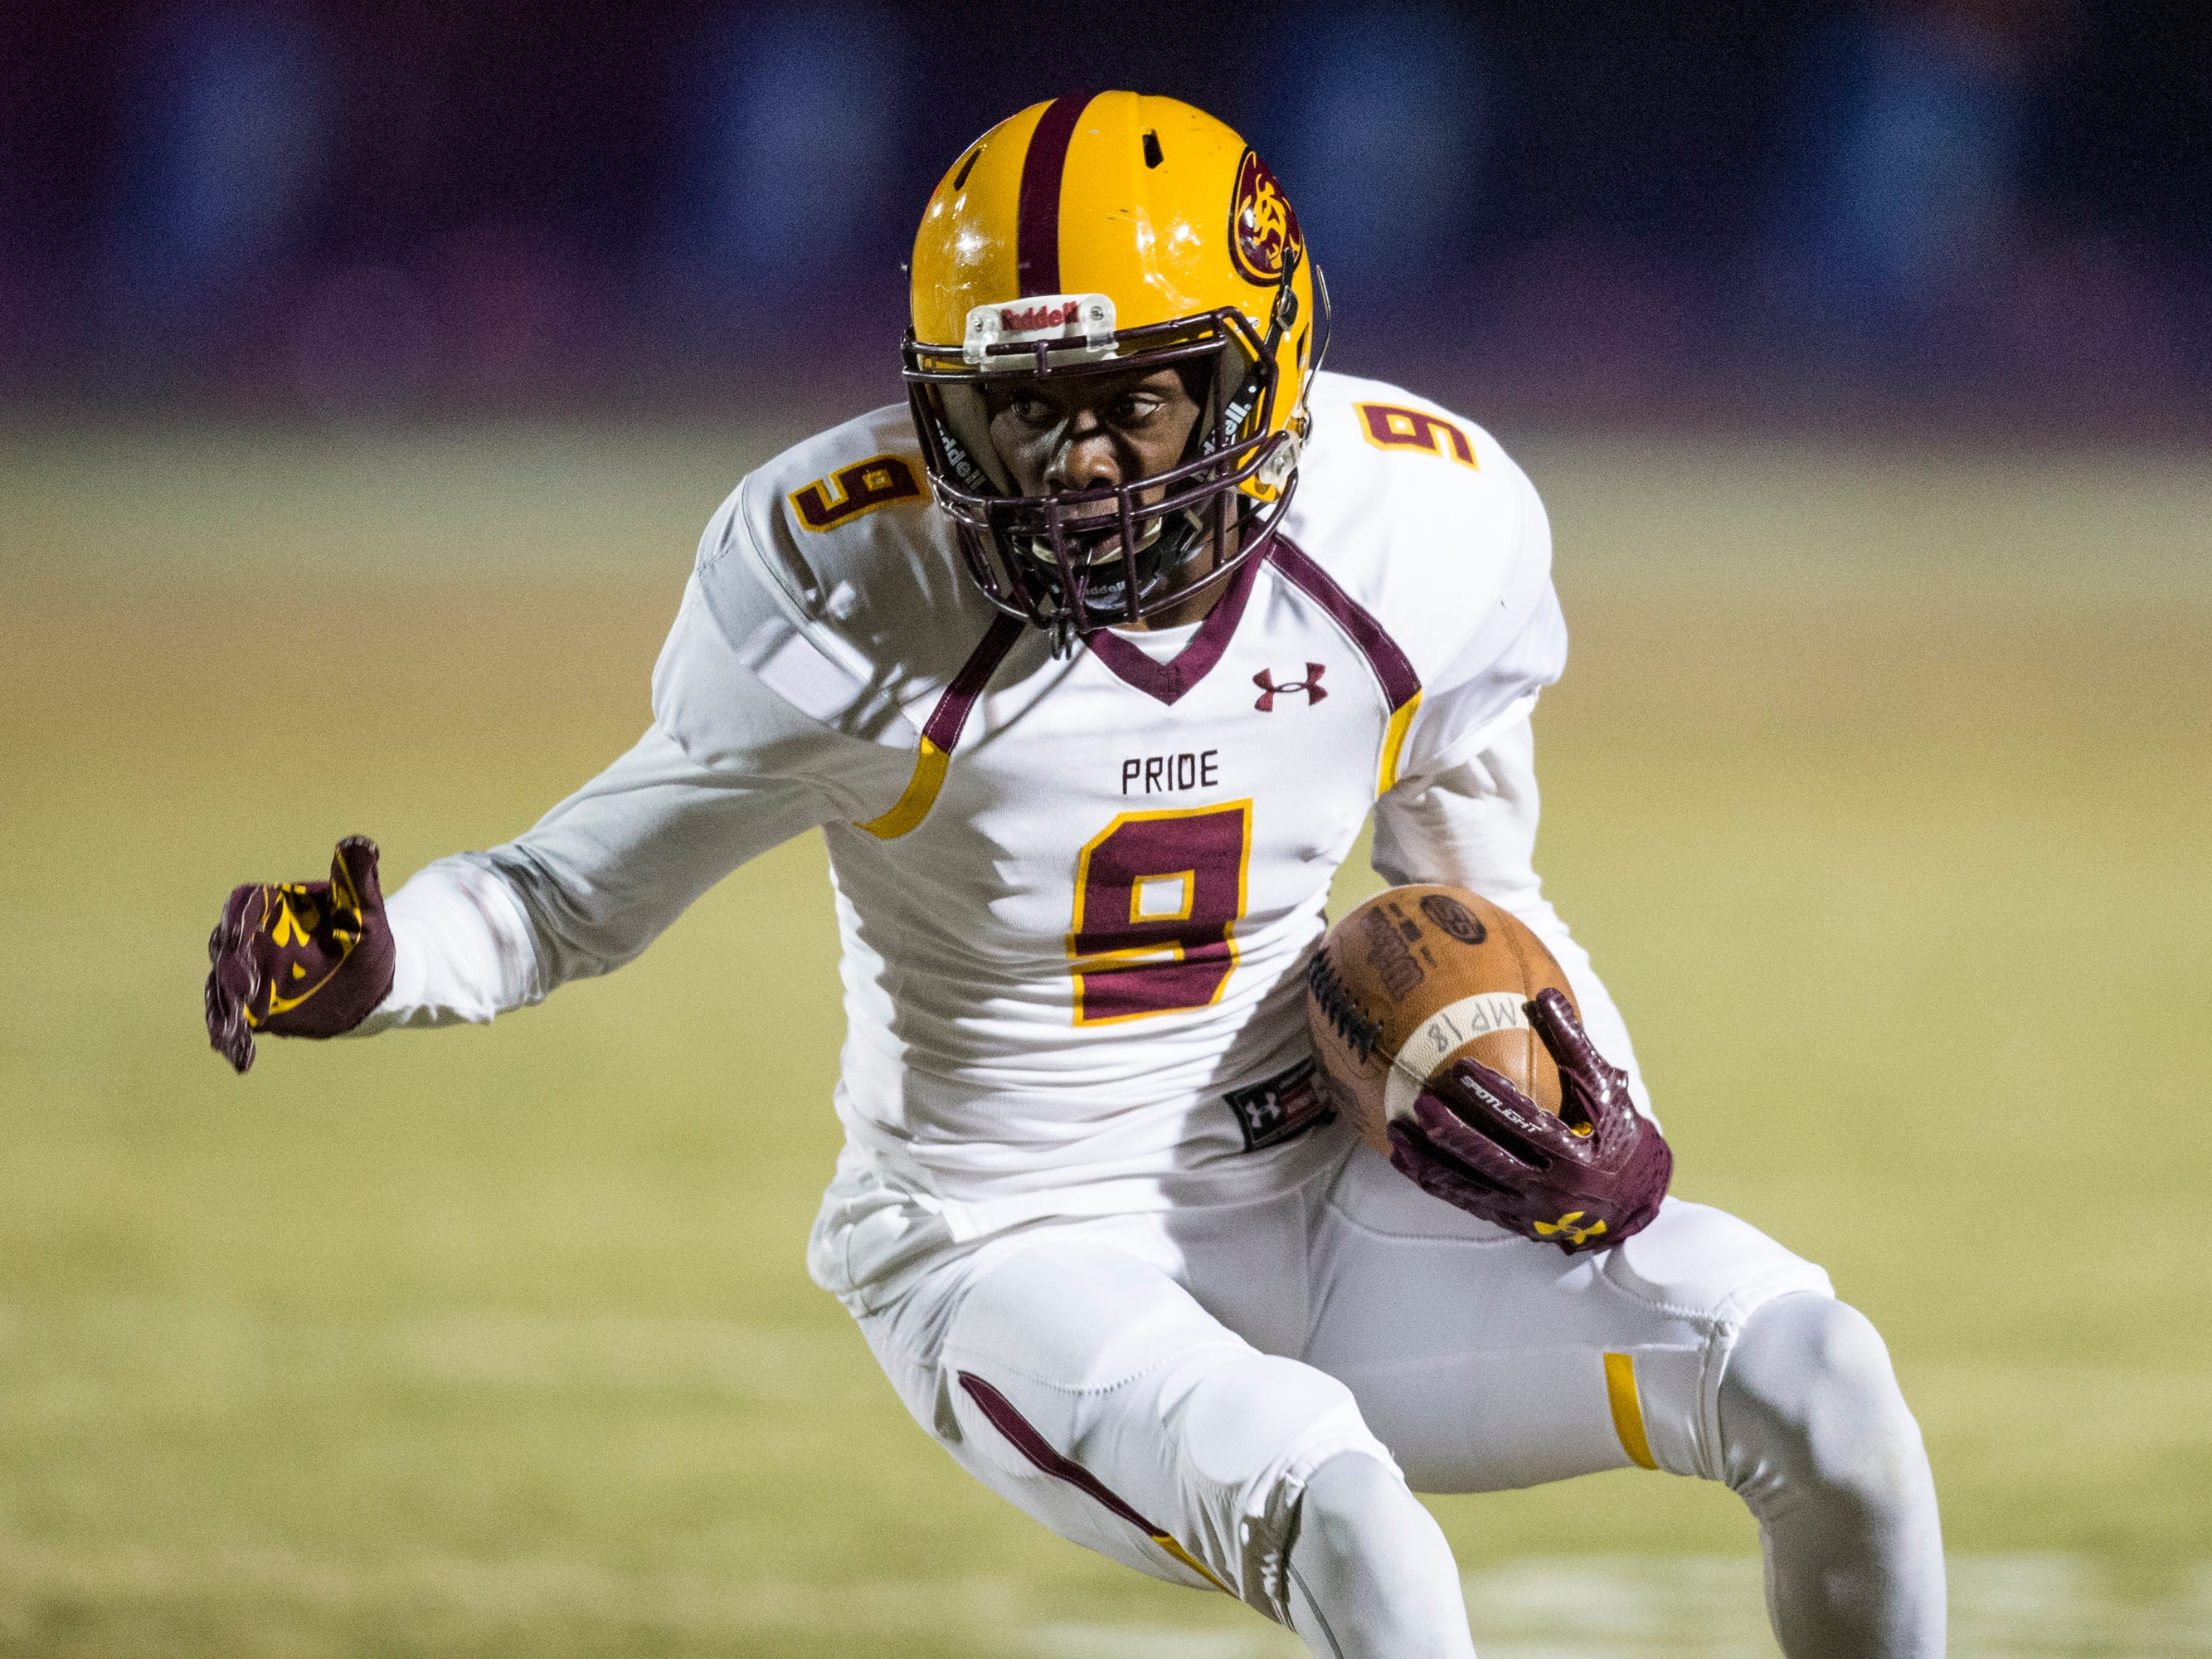 Mountain Pointe's Dominique Davis runs after a catch against Chandler in the first half on Friday, Nov. 9, 2018, at Chandler High School in Chandler, Ariz.